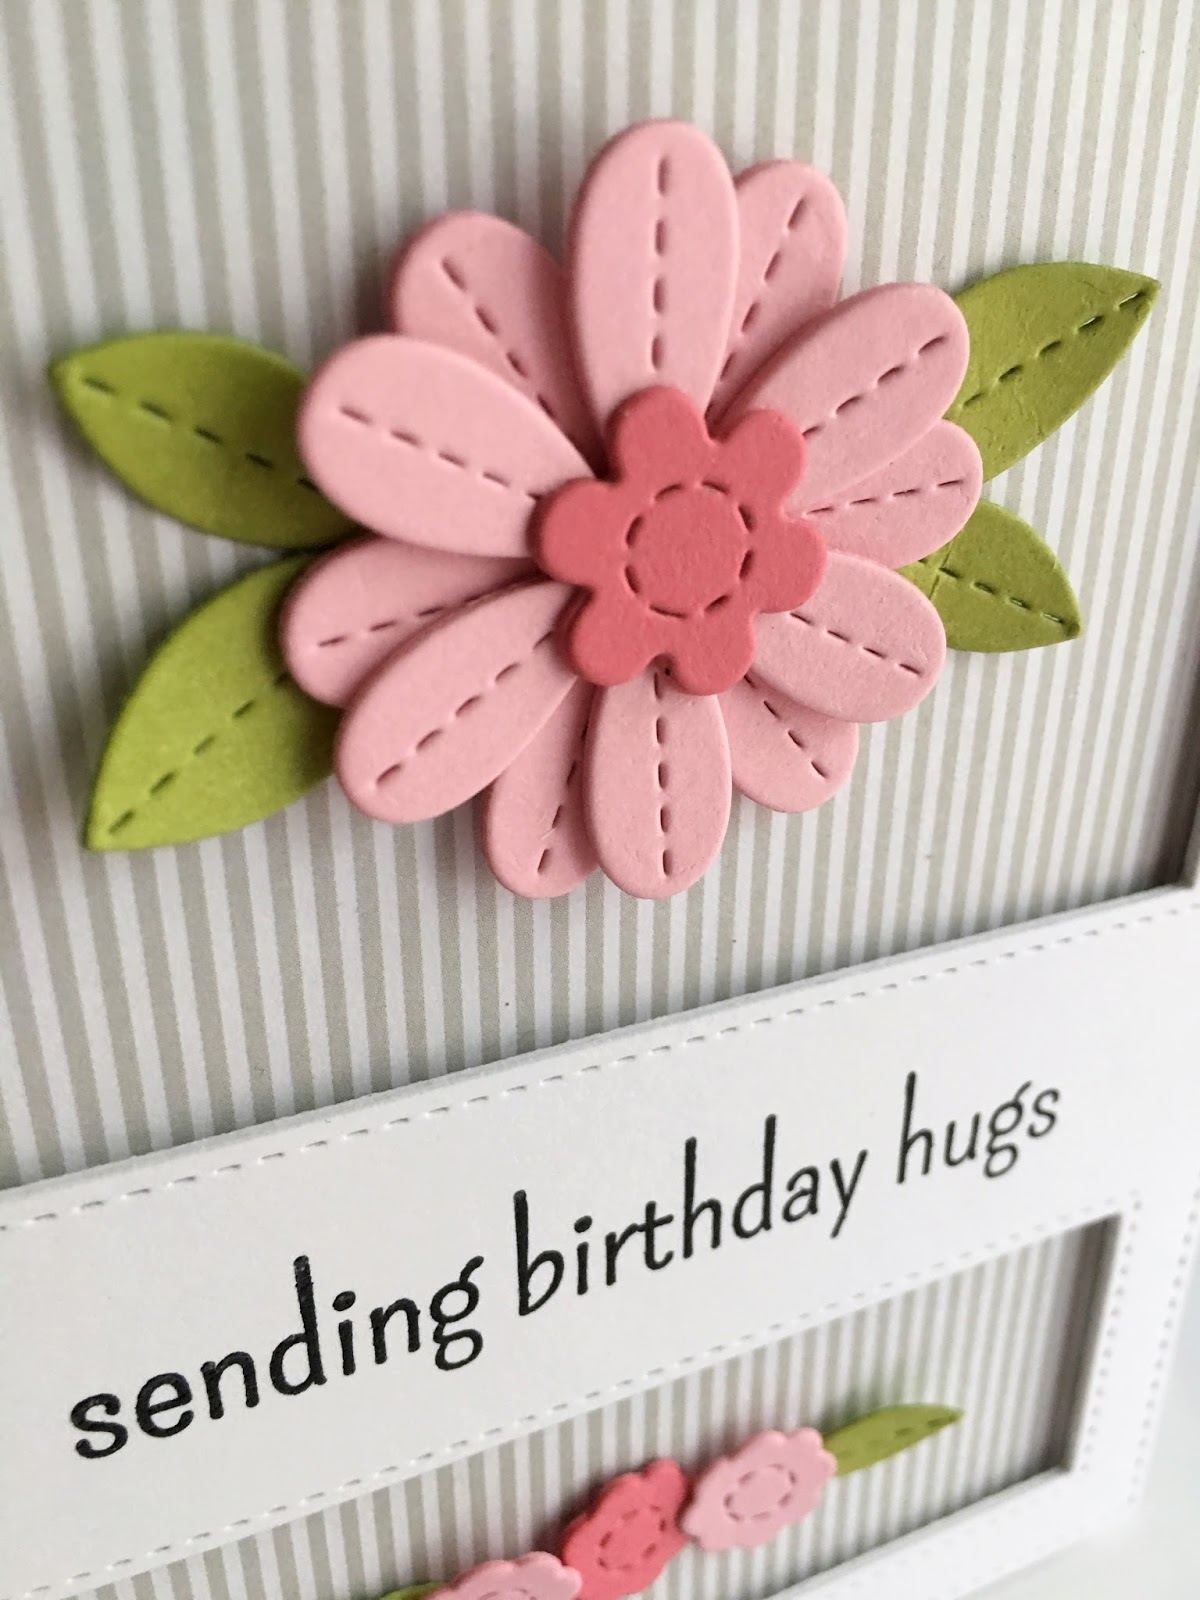 Im in haven happy birthday hugs the flowers and the frame using the tiny flowers on the bottom to mimic the single flower on the top the sentiment is from altenew birthday greetings izmirmasajfo